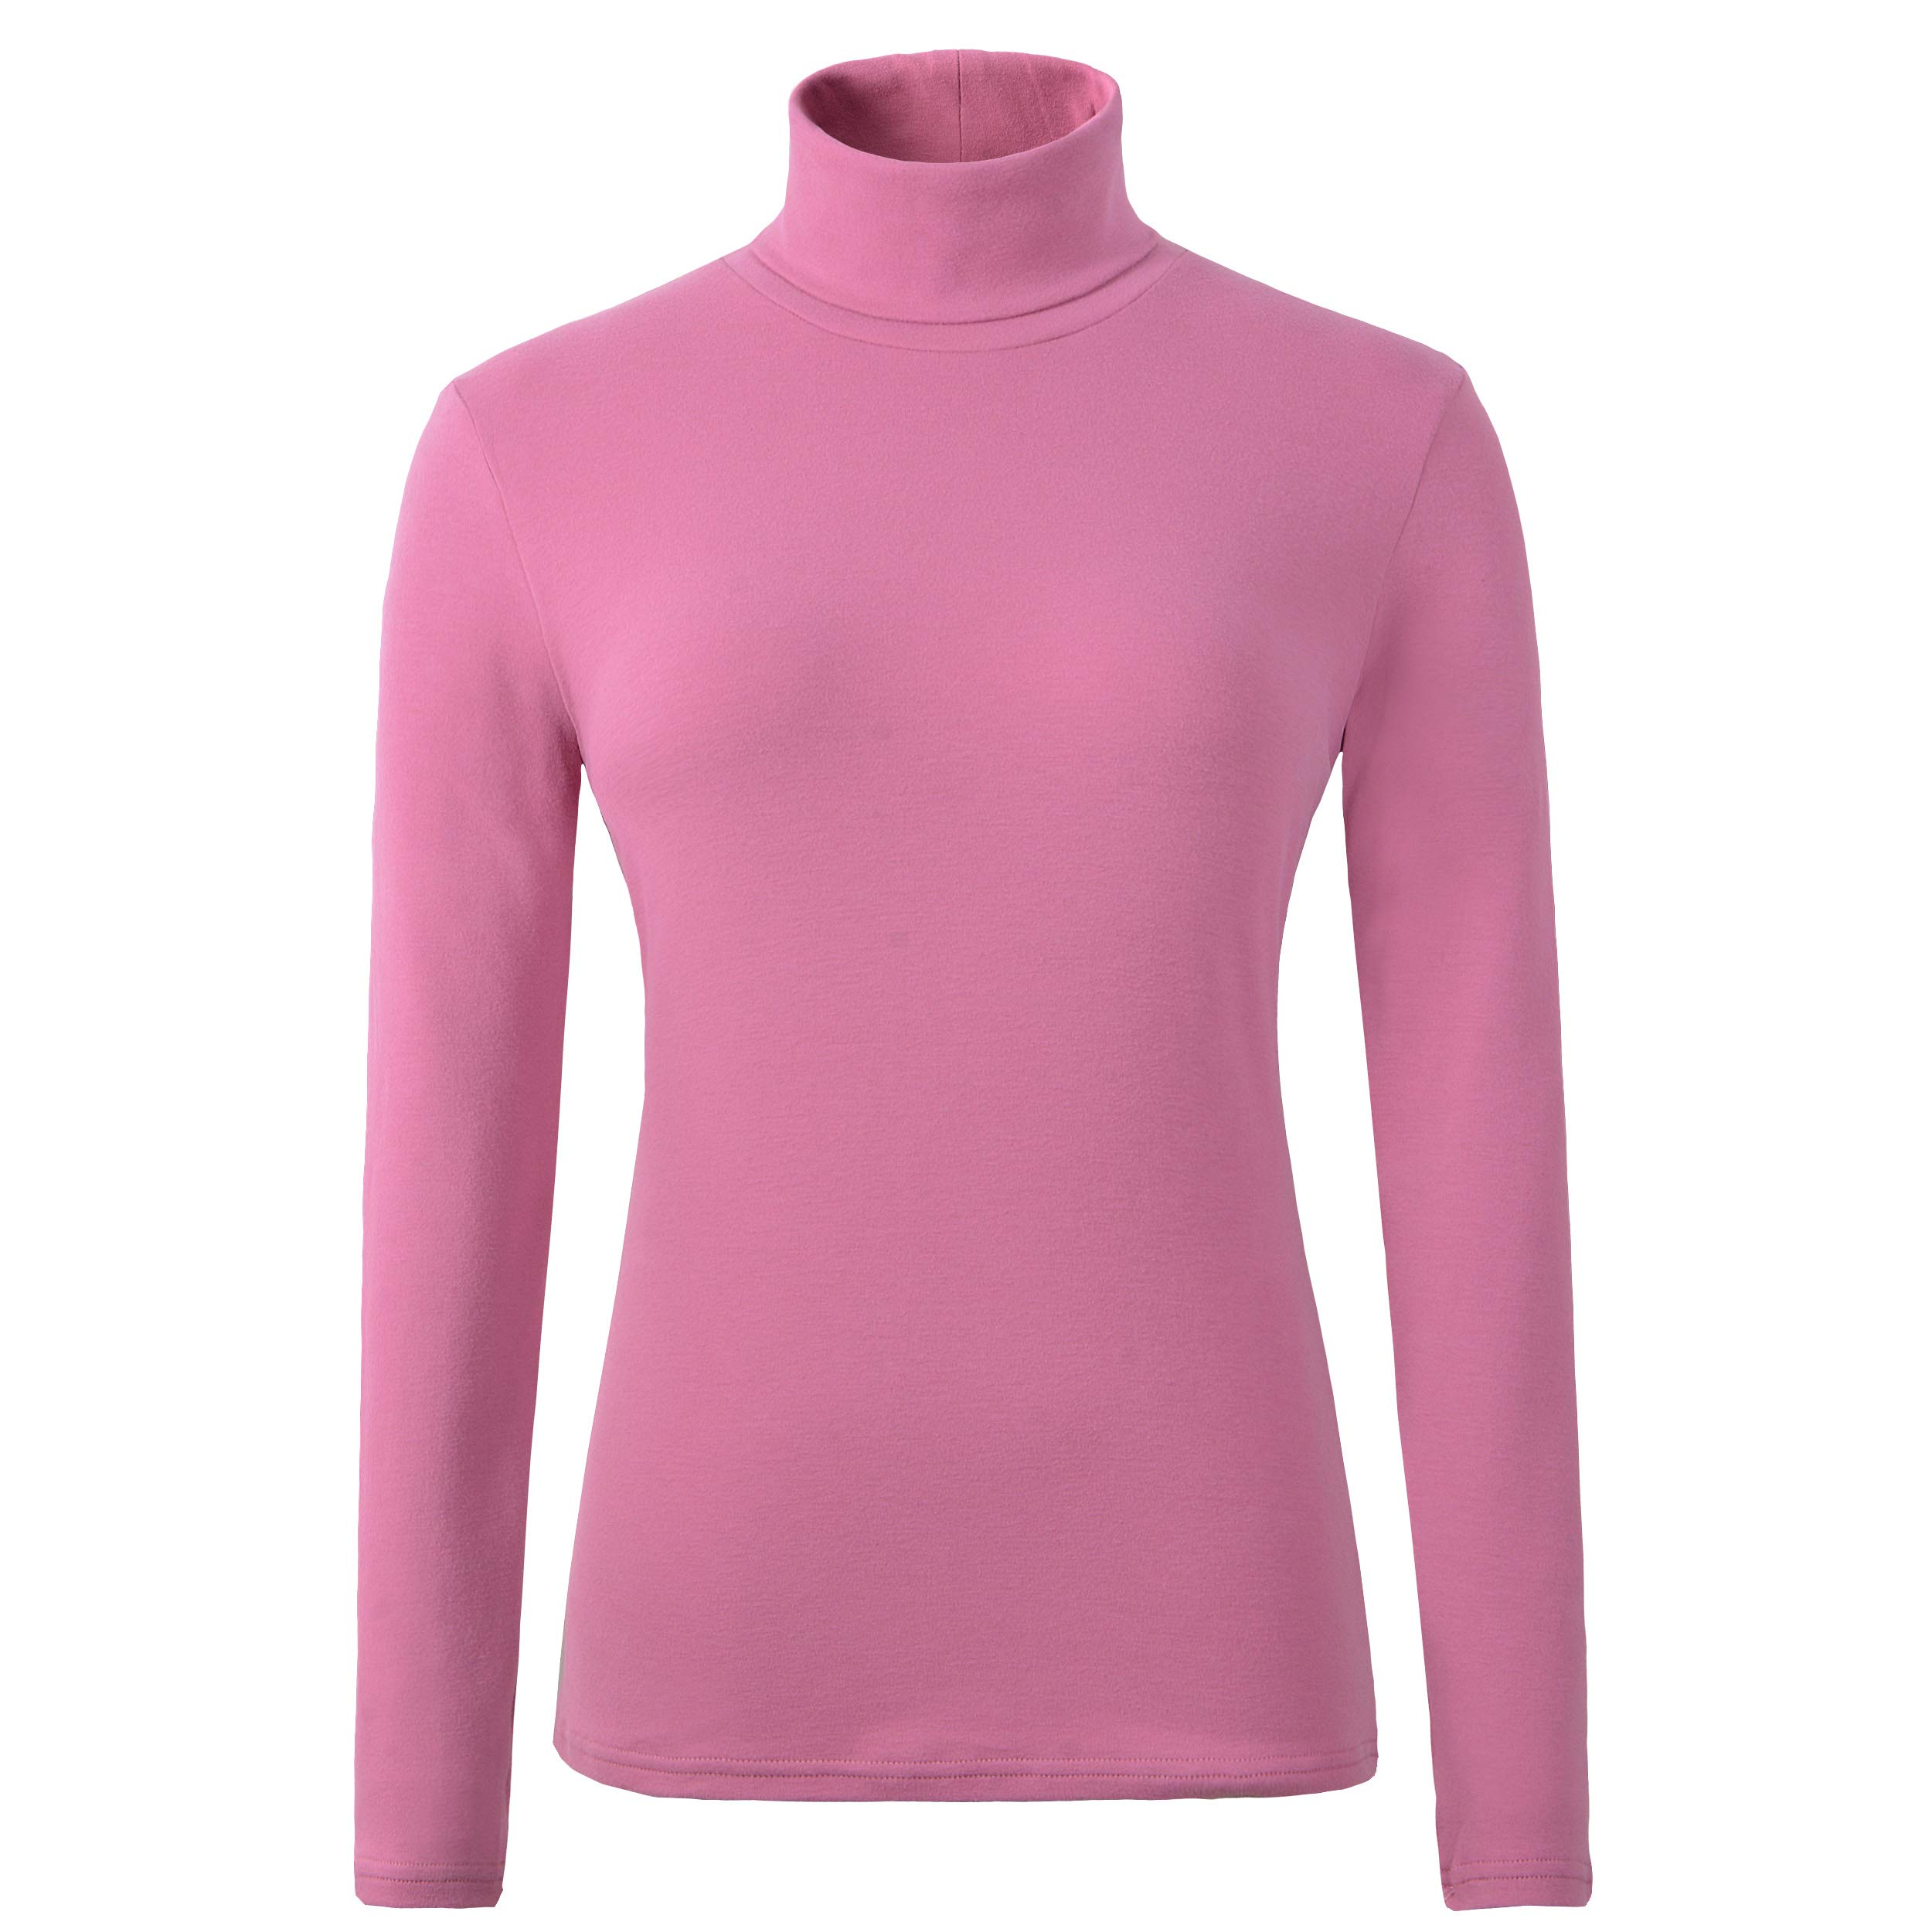 HieasyFit Women's Cotton Basic Thermal Turtleneck Pullover Top(Pink L) by HieasyFit